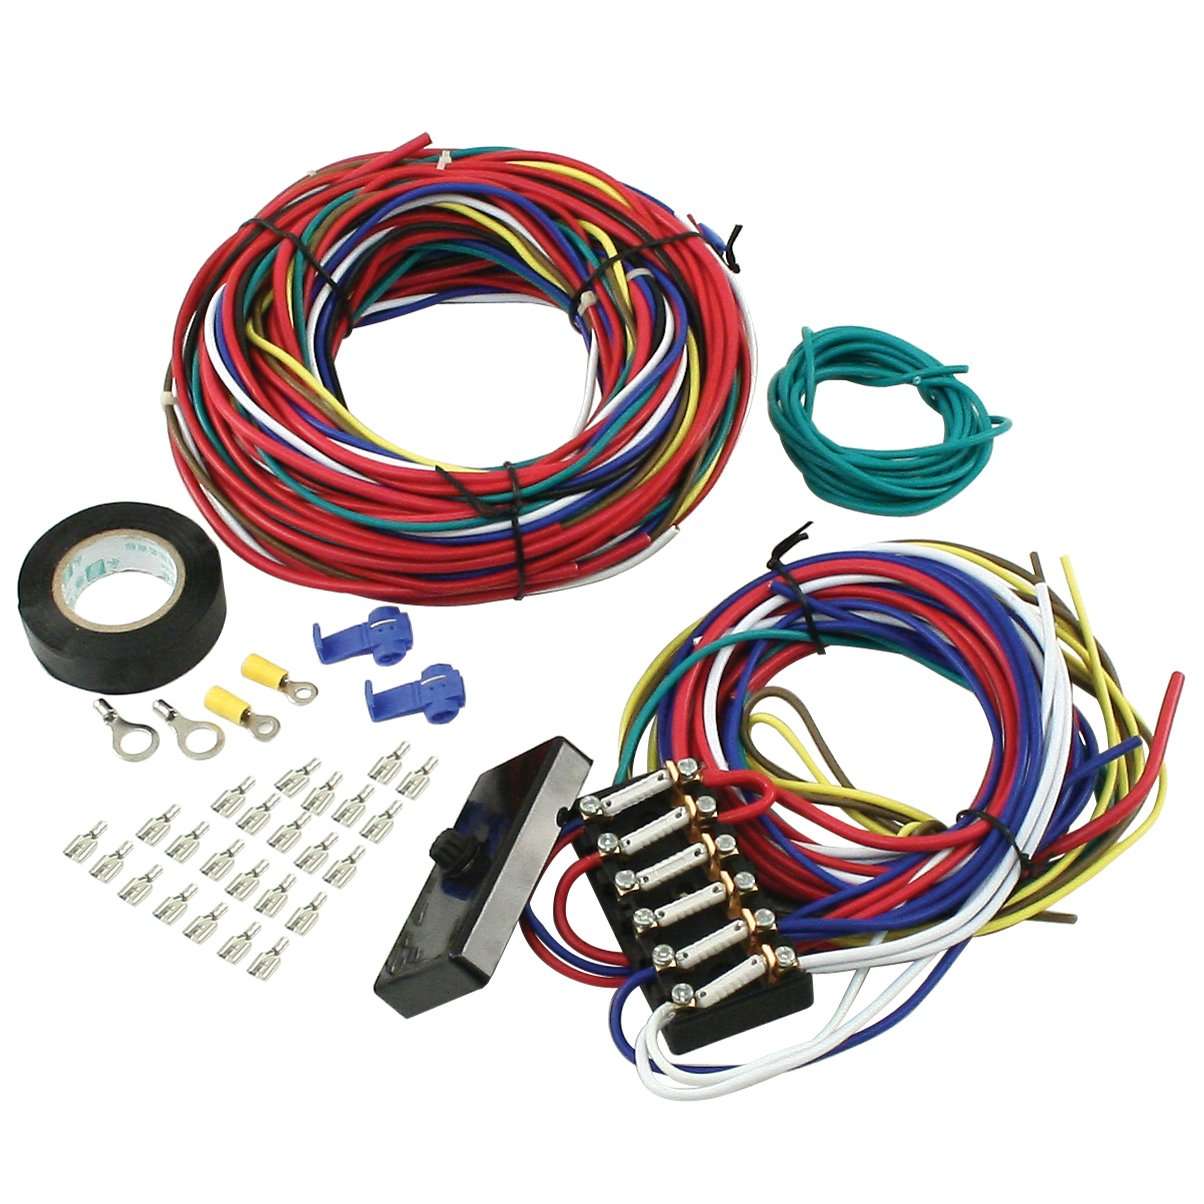 712Fyt3MSiL._SL1204_ amazon com empi 00 9466 0 wire loom kit, vw buggy, sand rail sand rail wiring harness at mifinder.co